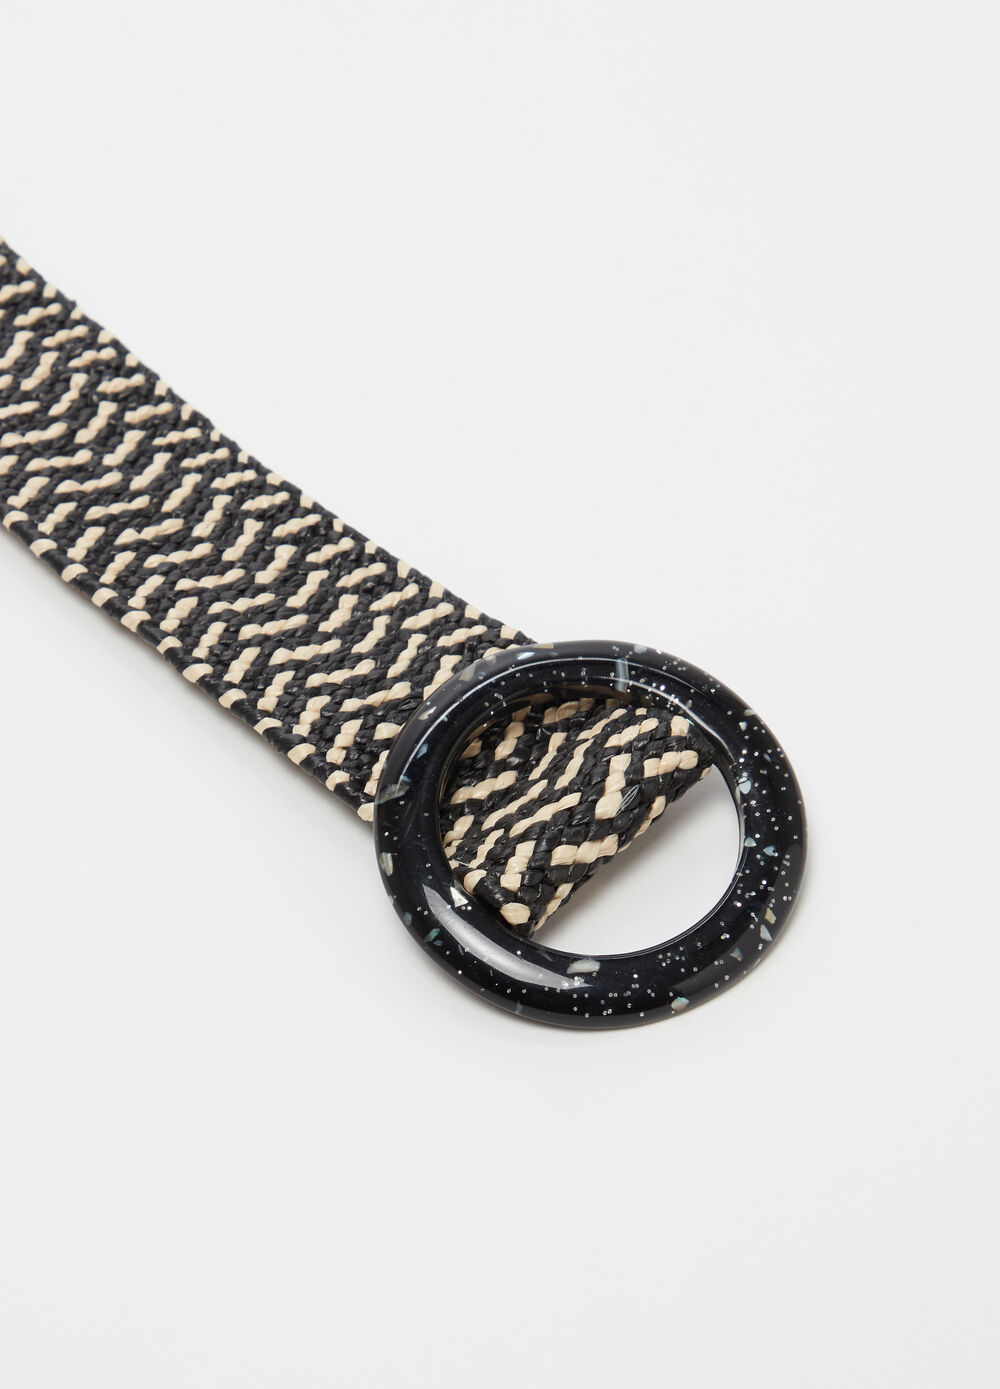 Natural-effect braided belt